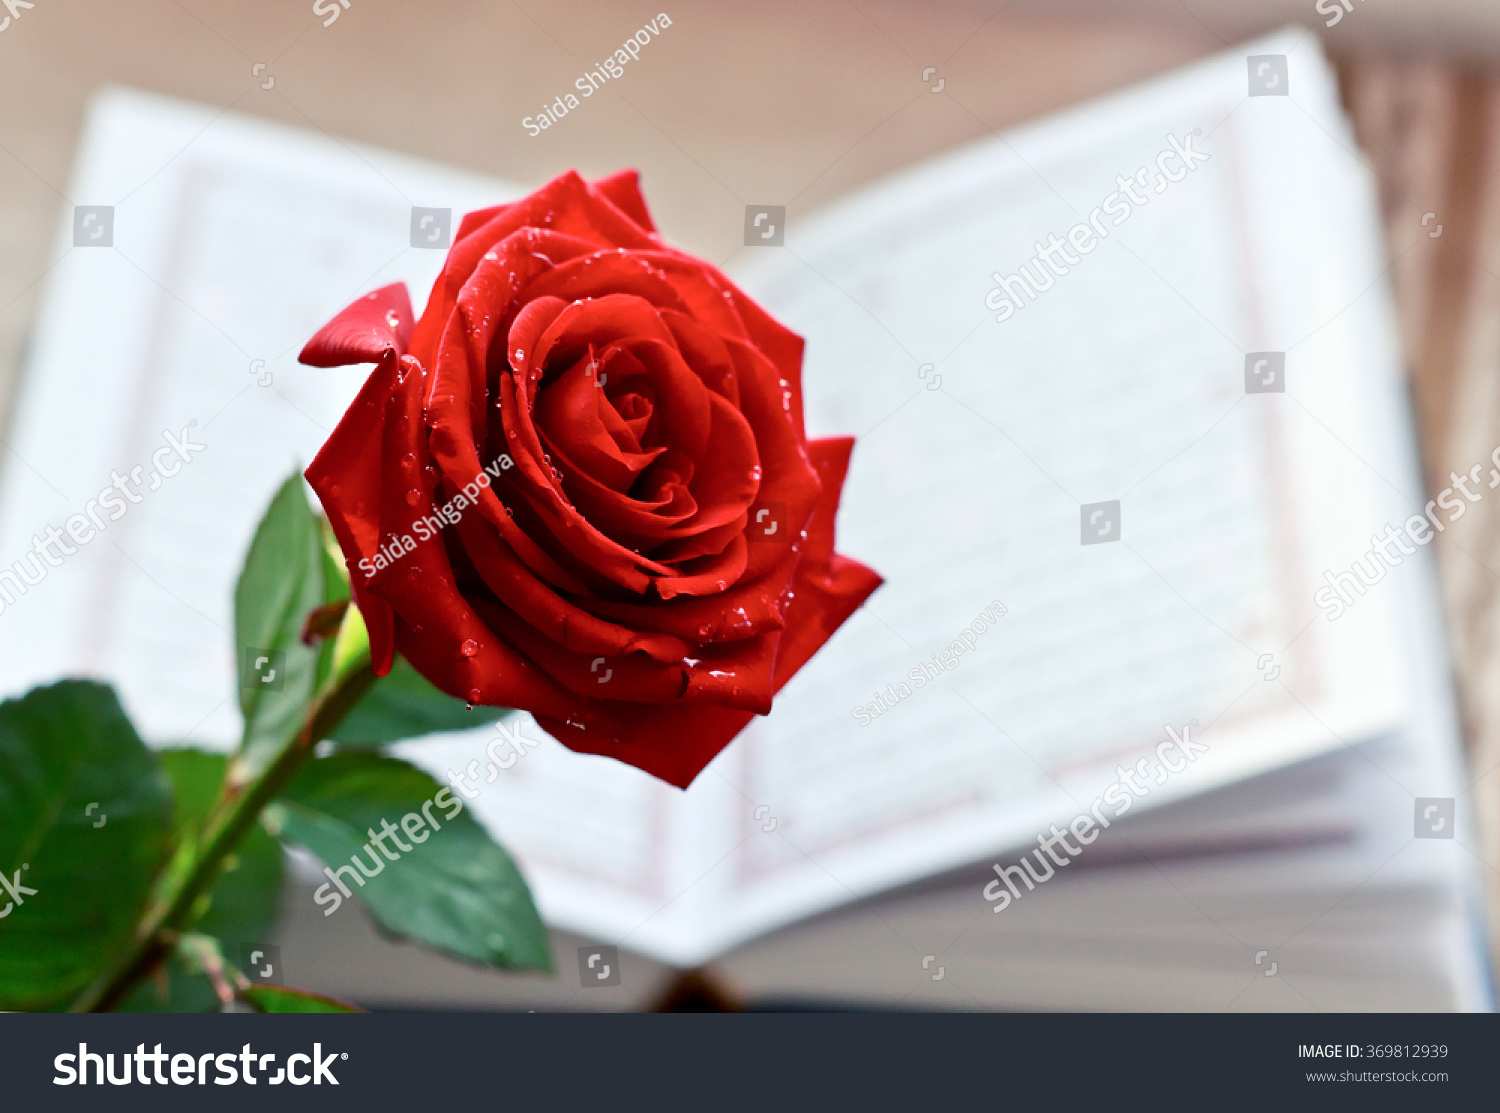 Rose Quran Holy Book Islam Stock Photo Edit Now 369812939